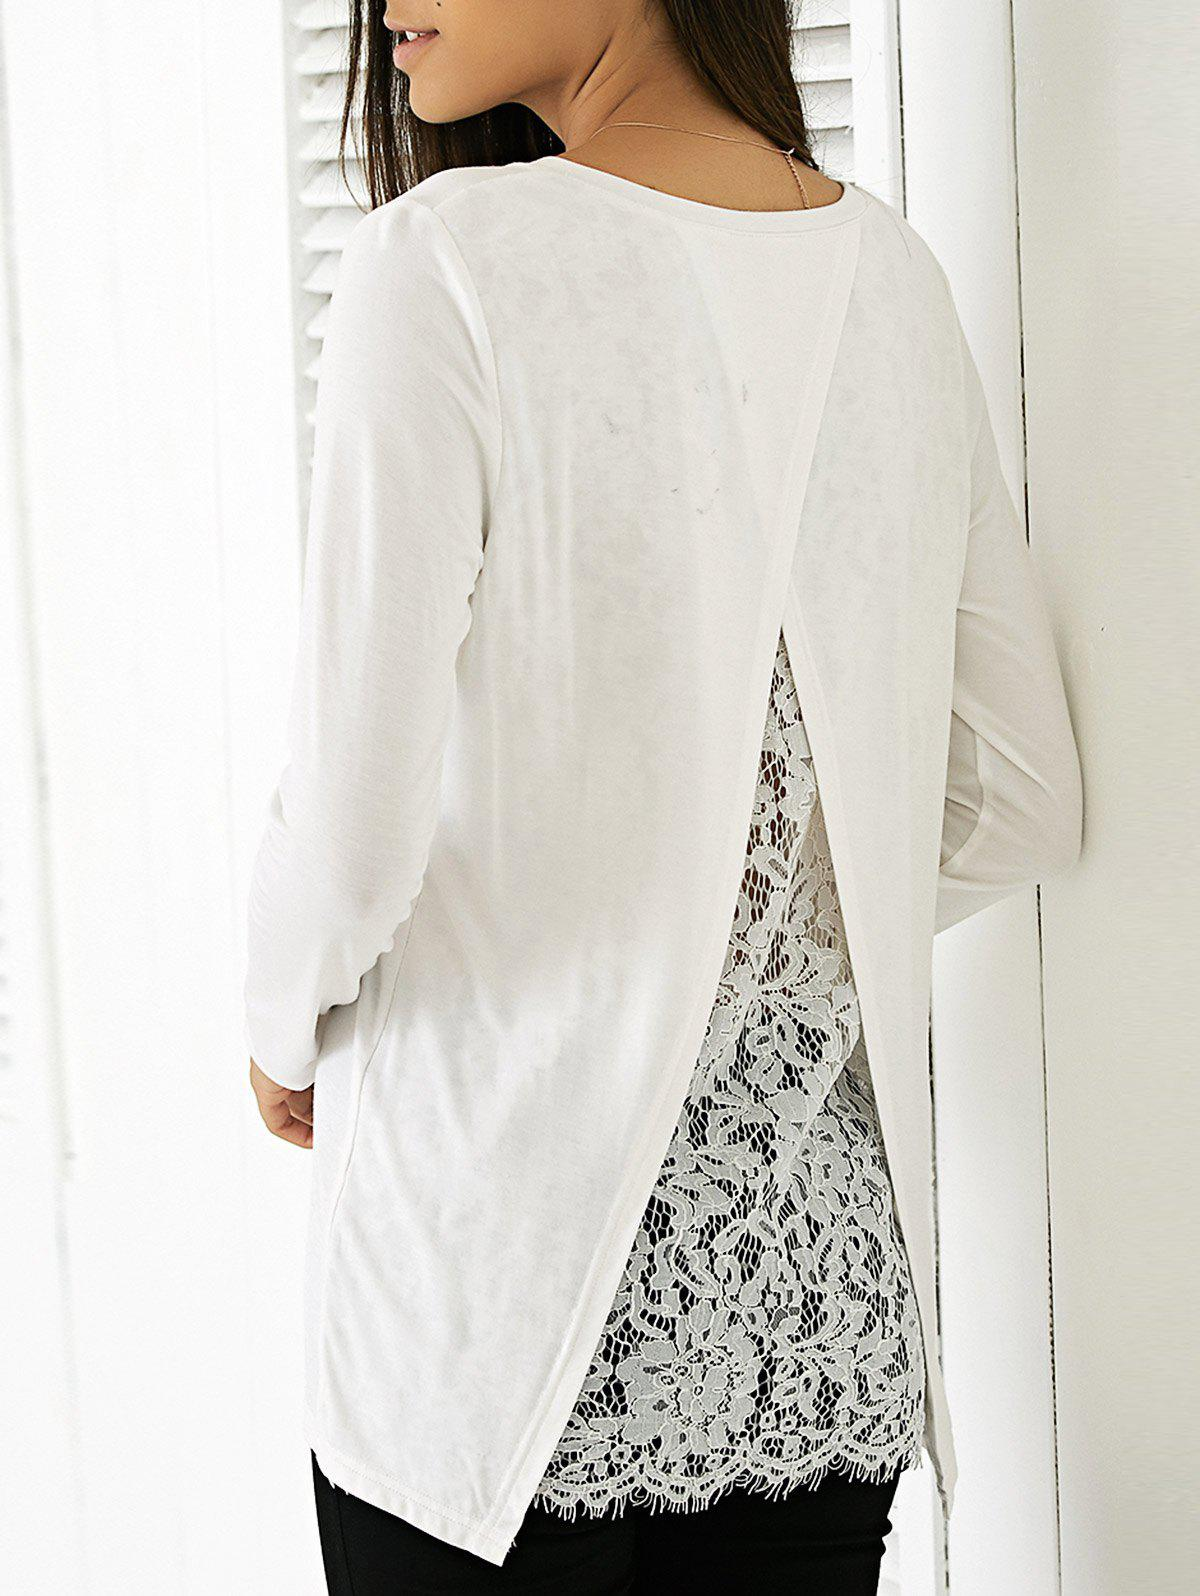 Elegant Women's Round Neck Long Sleeve Solid Color Blouse - WHITE XL